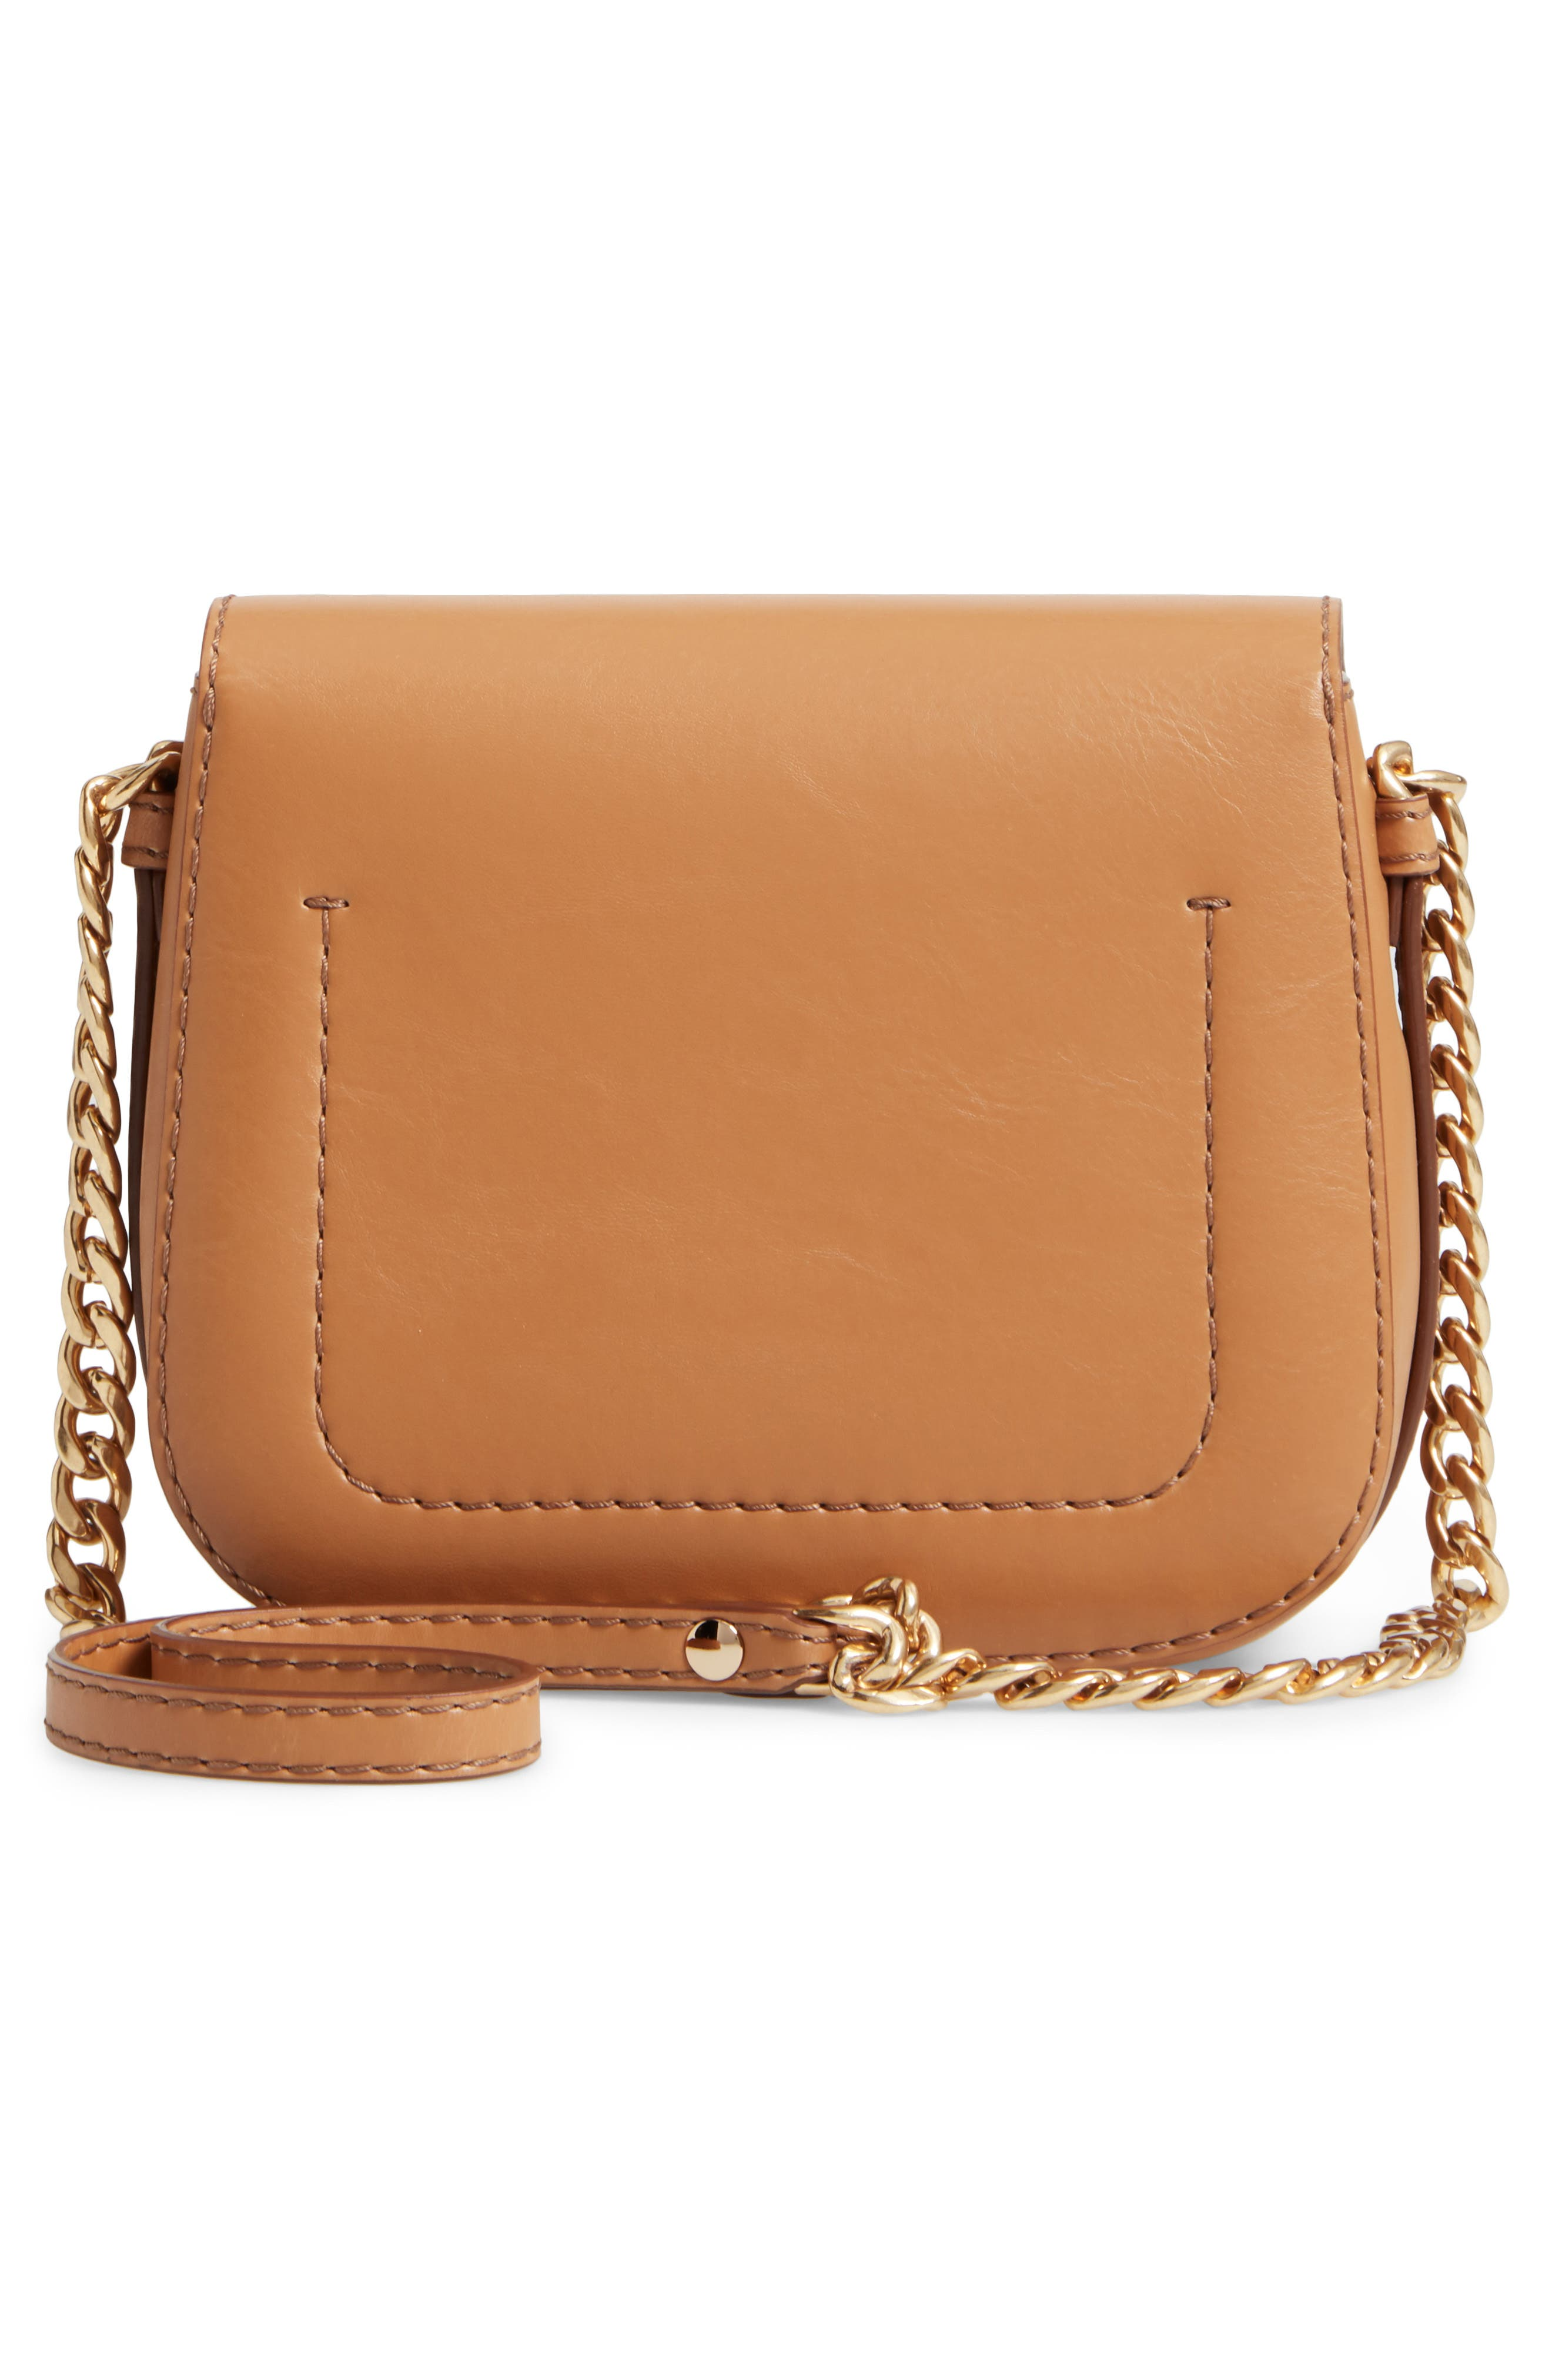 Textured Faux Leather Crossbody Bag,                             Alternate thumbnail 3, color,                             294